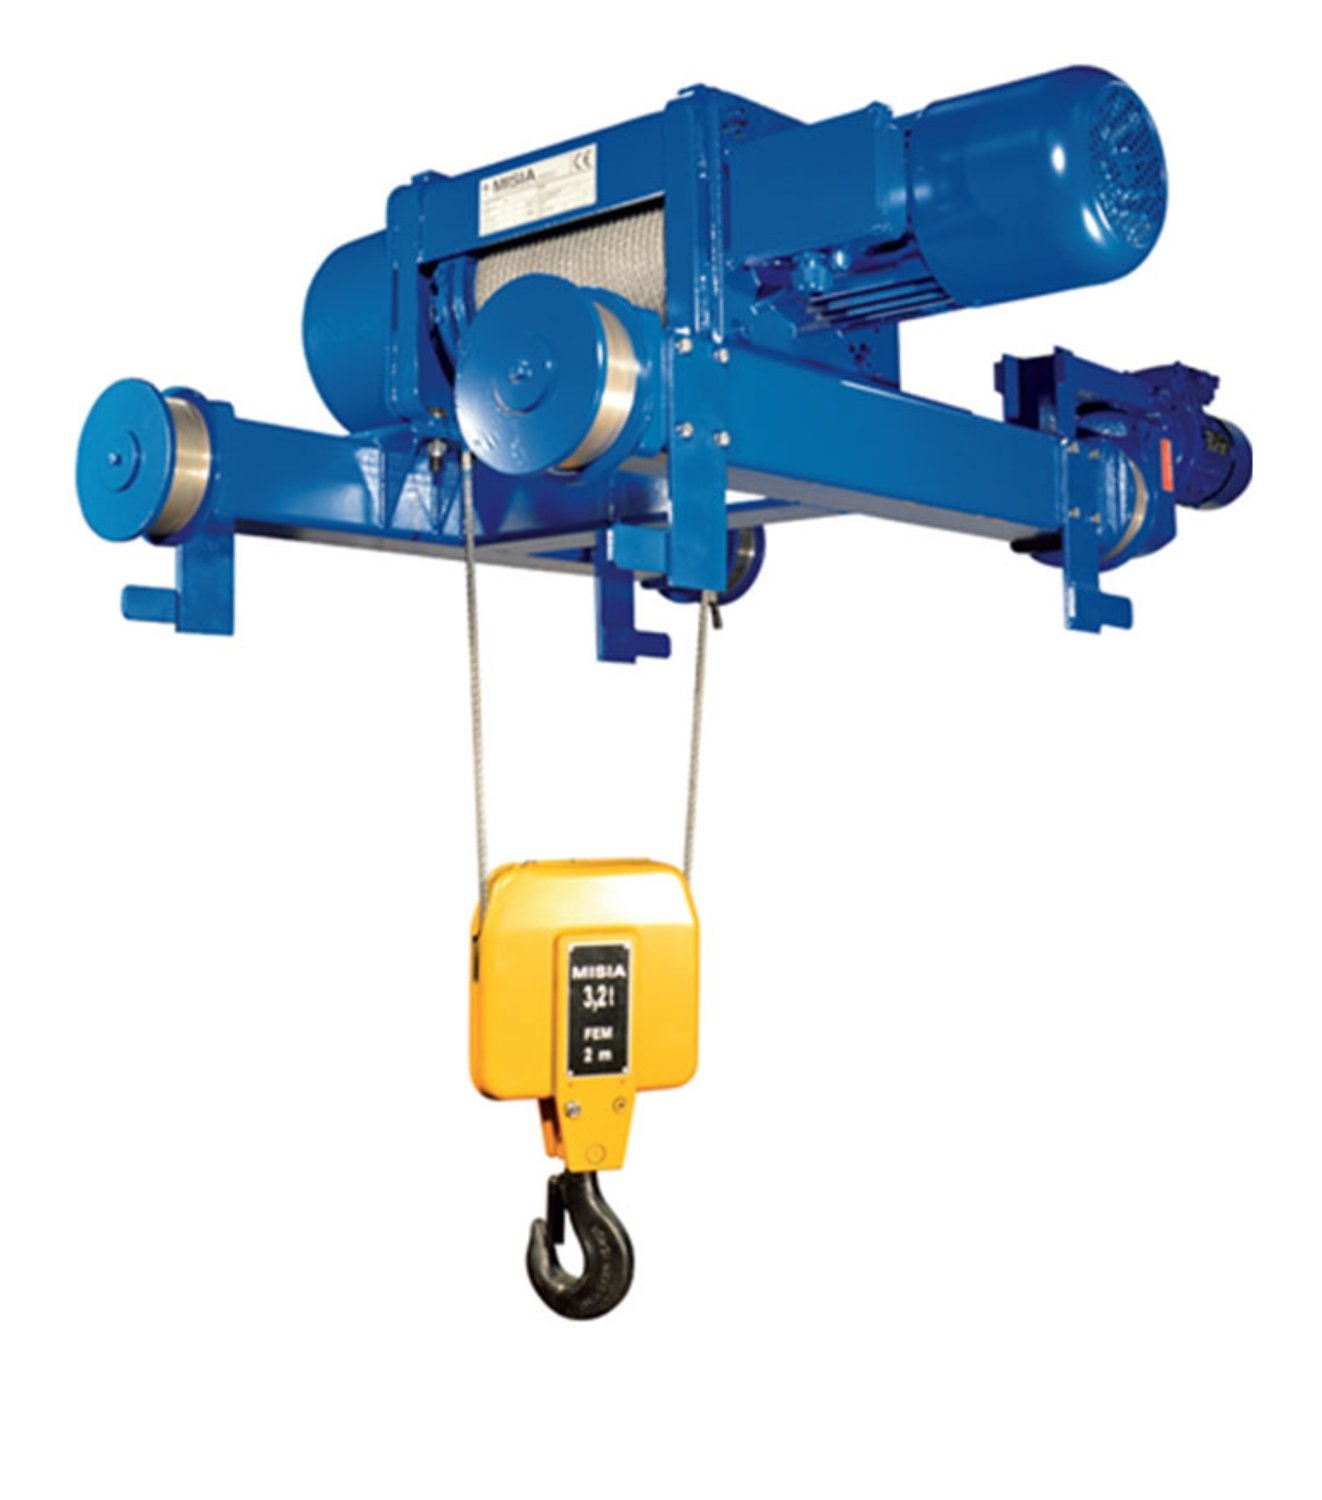 MISIA HOIST 5,000 KG / 7 M FOUR WHEEL CARRIAGE